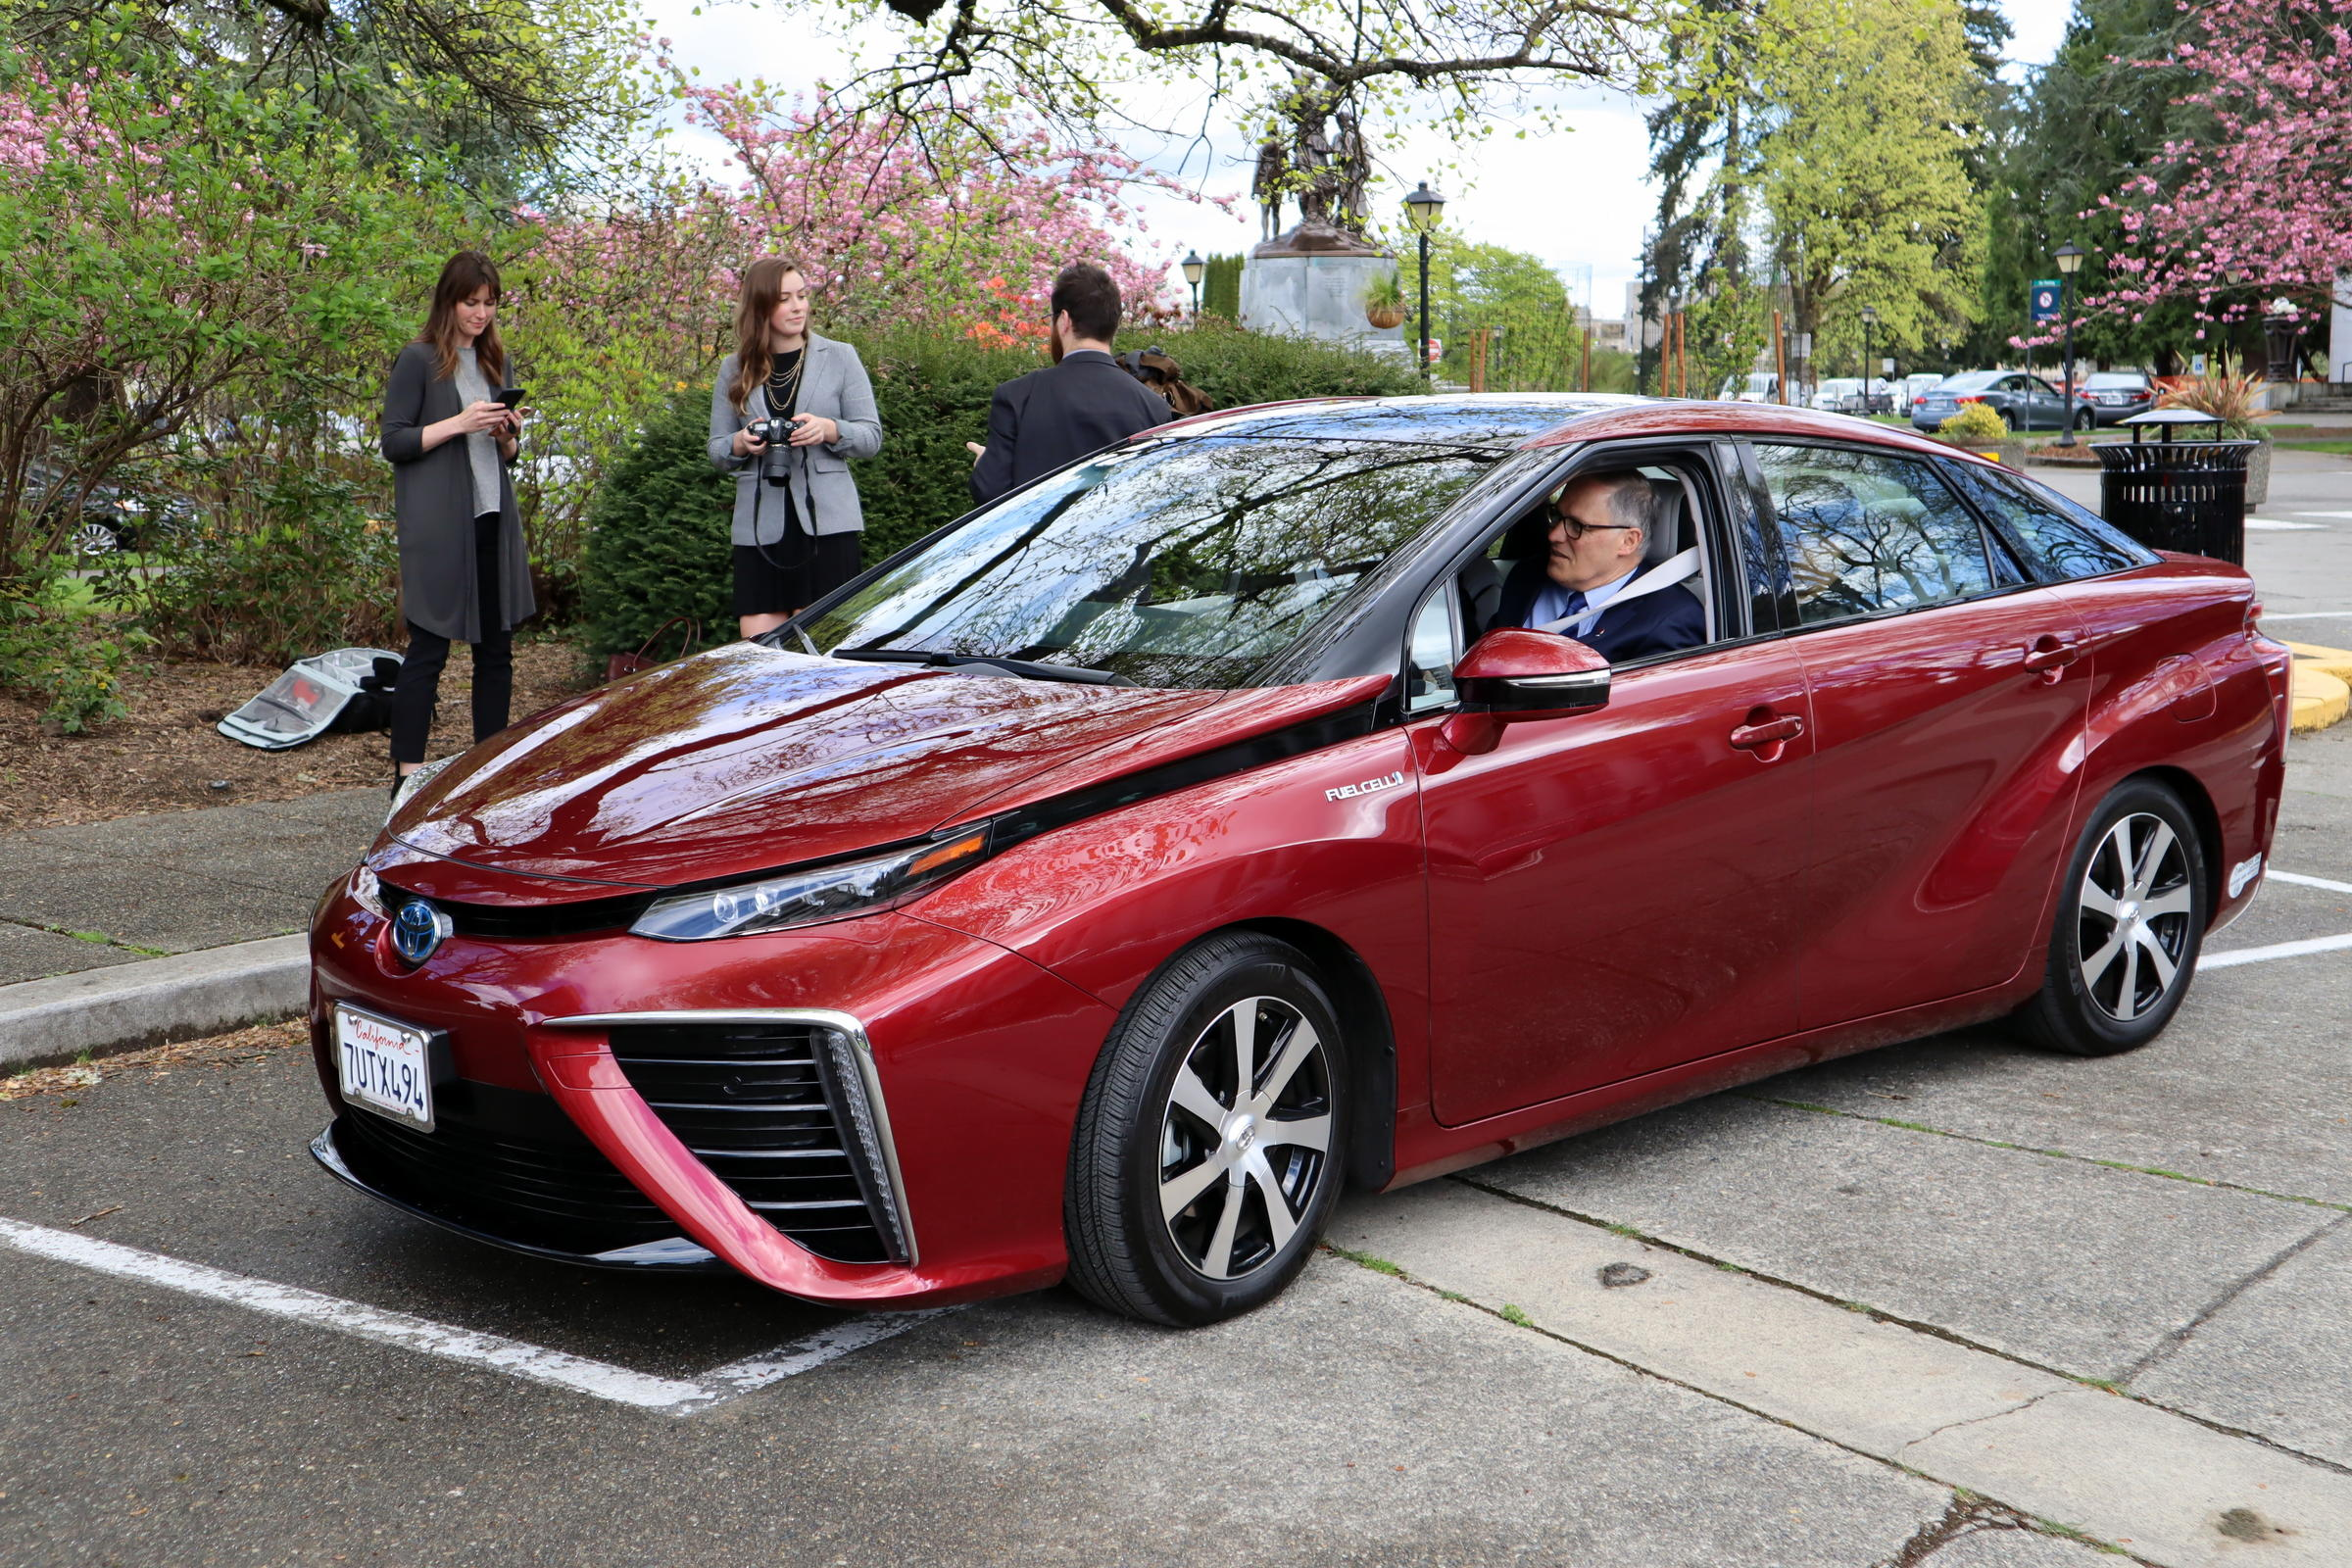 Jay Inslee Sets Out On A Short Test Drive Wednesday In Toyota Mirai Hydrogen Fuel Cell Car